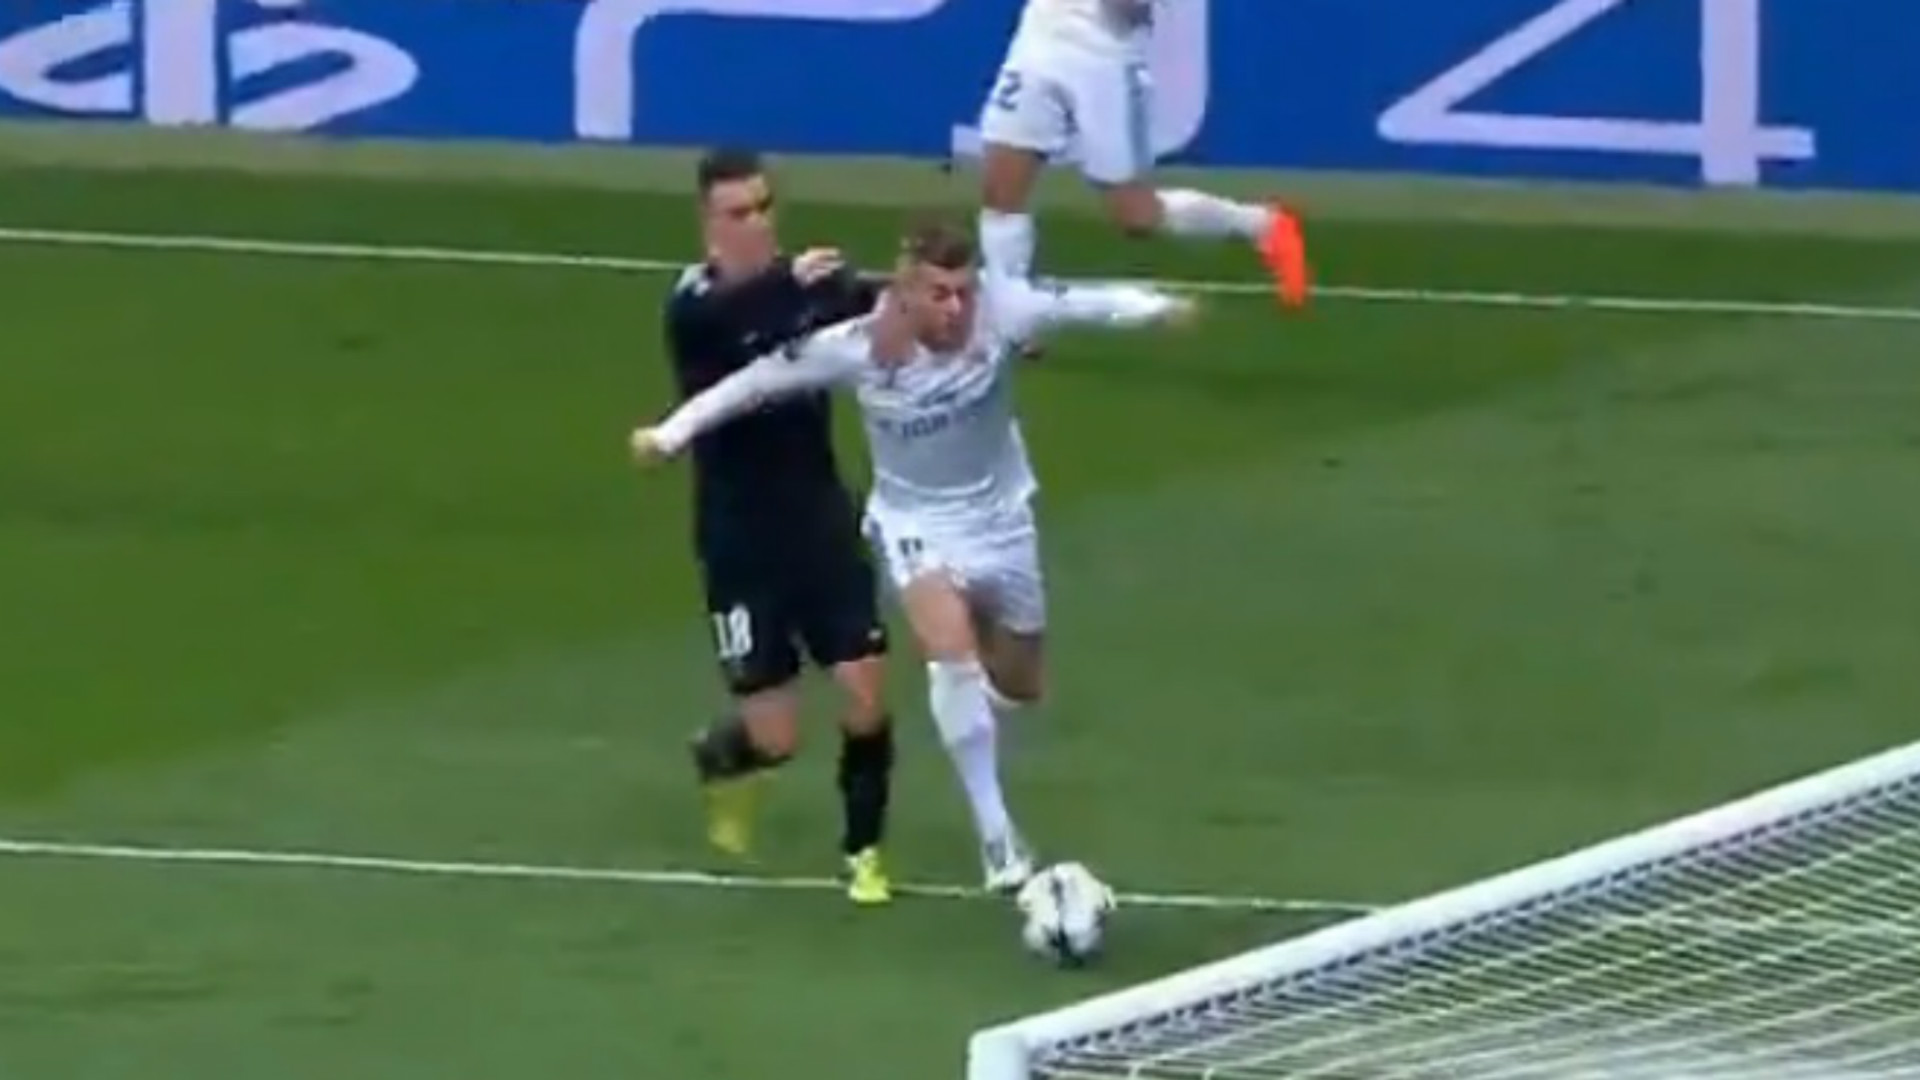 https://images.performgroup.com/di/library/GOAL/25/96/giovani-lo-celso-toni-kroos-penalty-14022018_yibbmnavu3wq1jf5lui92eumd.jpg